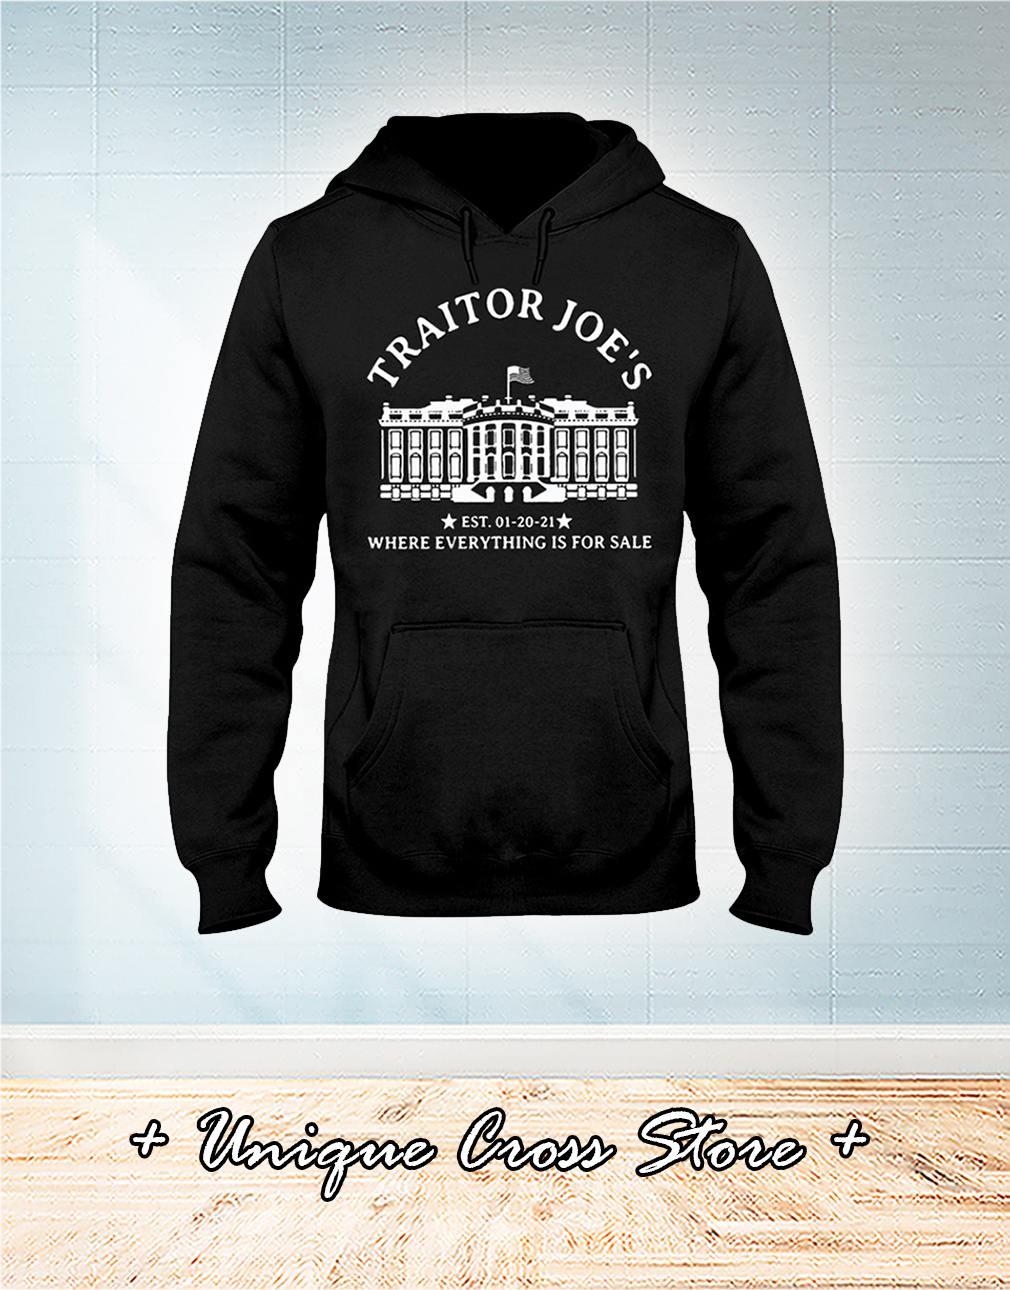 White House Traitor Joe's Where Everything Is For Sale hoodie